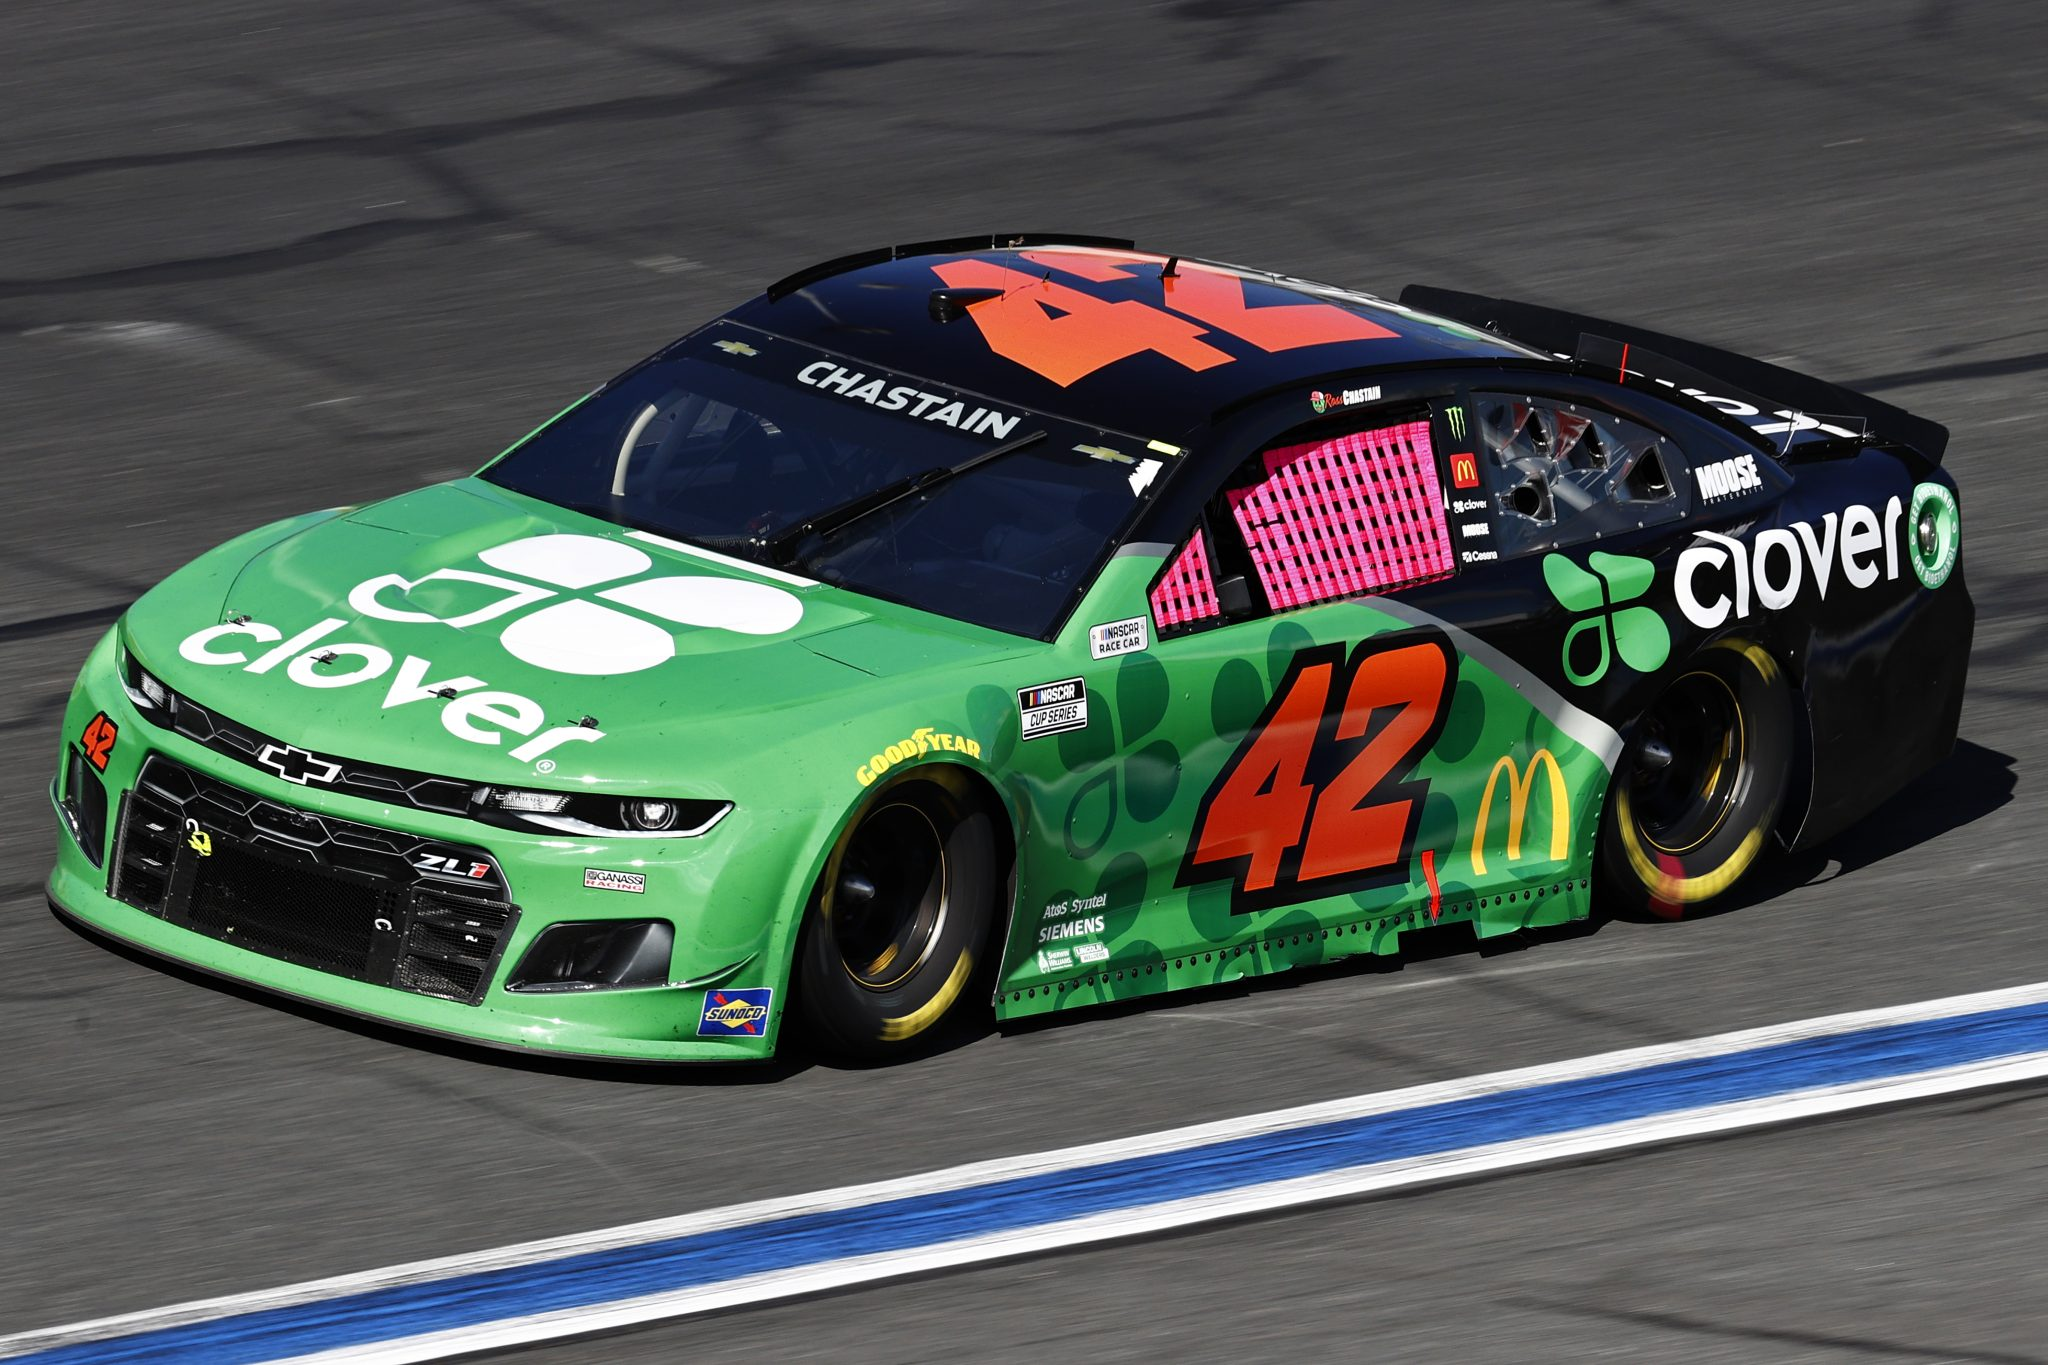 CONCORD, NORTH CAROLINA - OCTOBER 10: Ross Chastain, driver of the #42 Clover Chevrolet, drives during the NASCAR Cup Series Bank of America ROVAL 400 at Charlotte Motor Speedway on October 10, 2021 in Concord, North Carolina. (Photo by Jared C. Tilton/Getty Images) | Getty Images